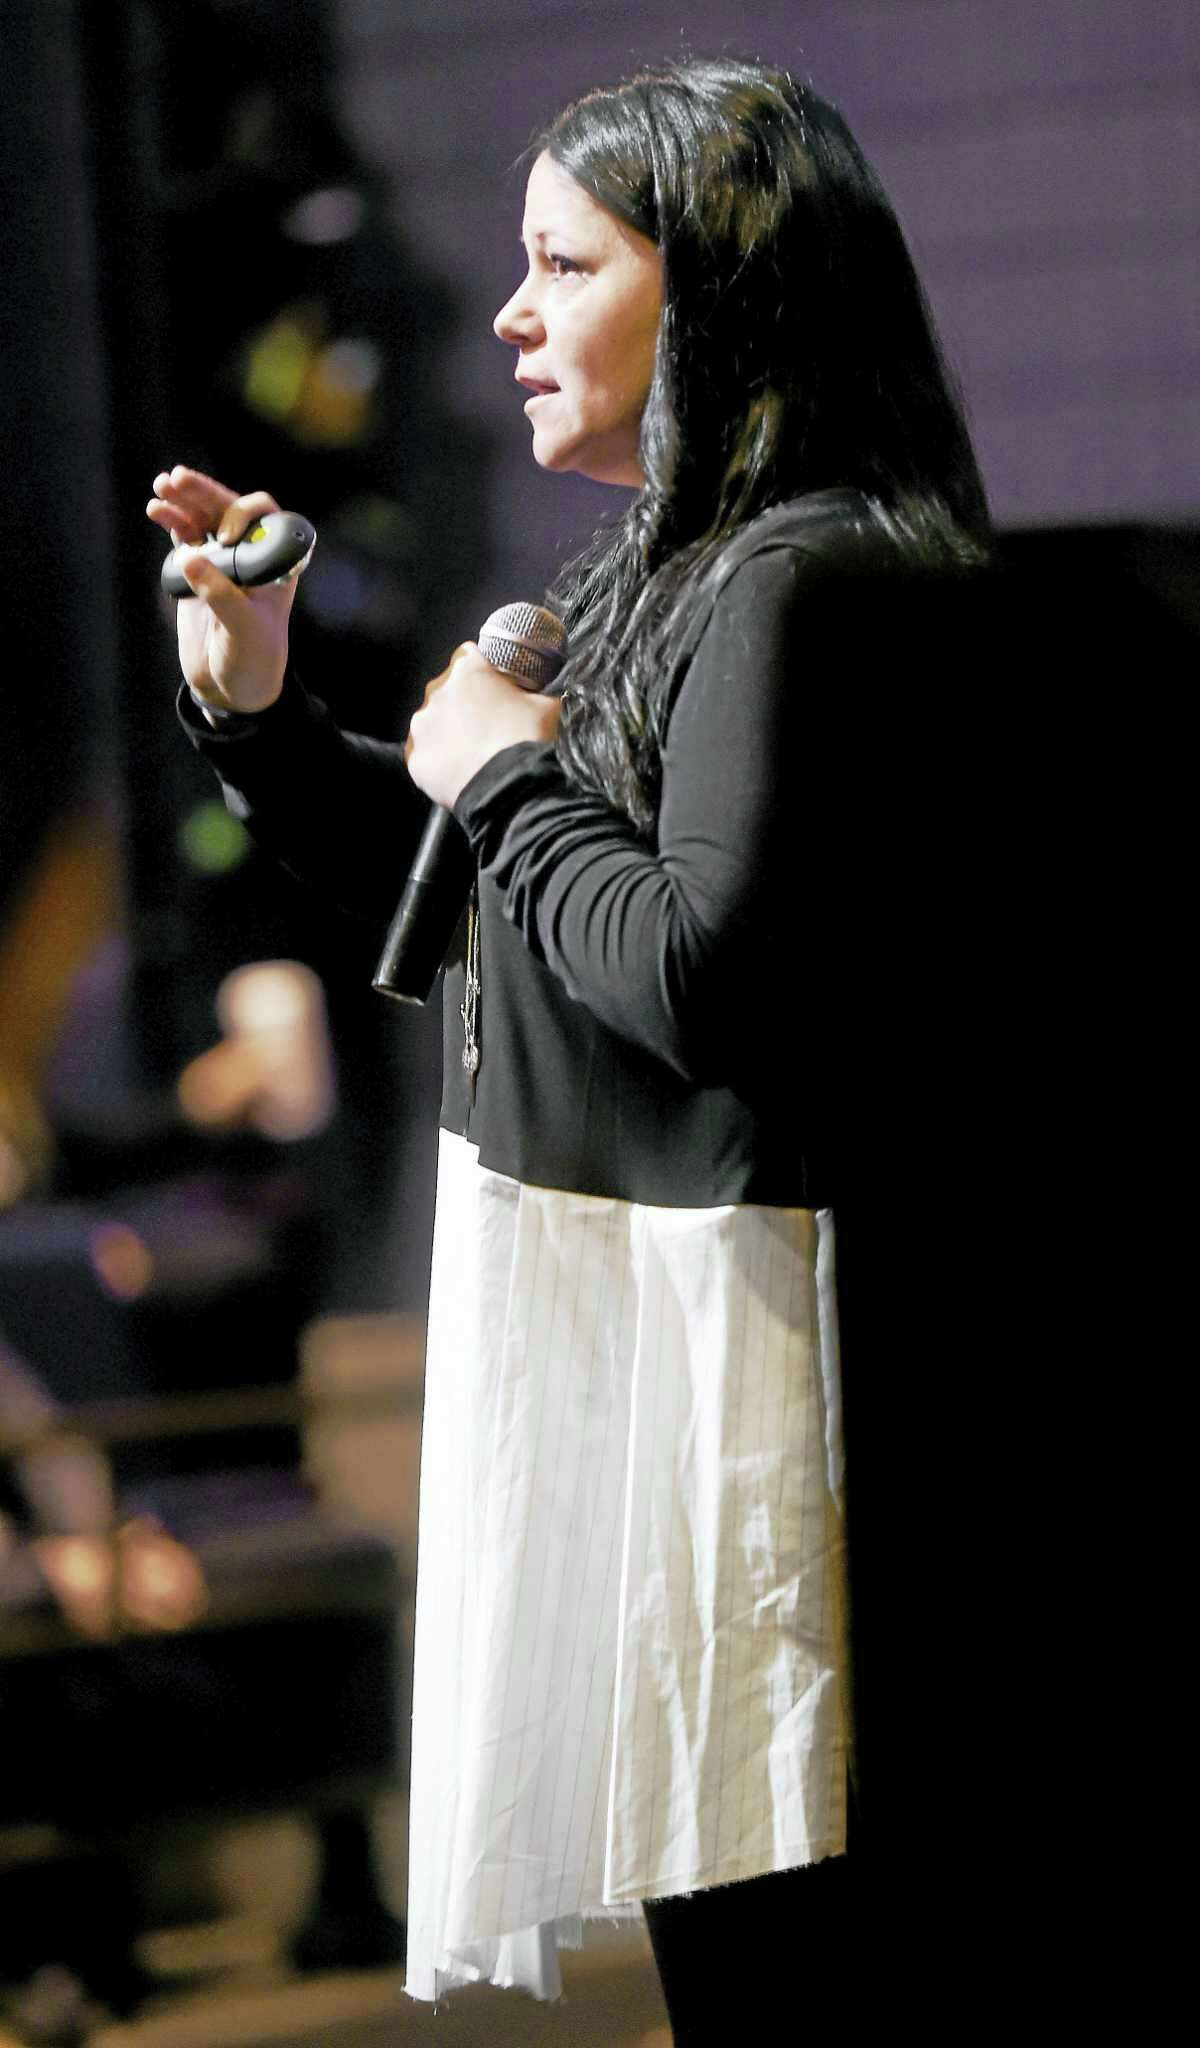 (Arnold Gold-New Haven Register) Human trafficking survivor Timea Nagy of Canada speaks at the 25th Annual Arnold Markle Symposium at the University of New Haven on 10/25/2016.